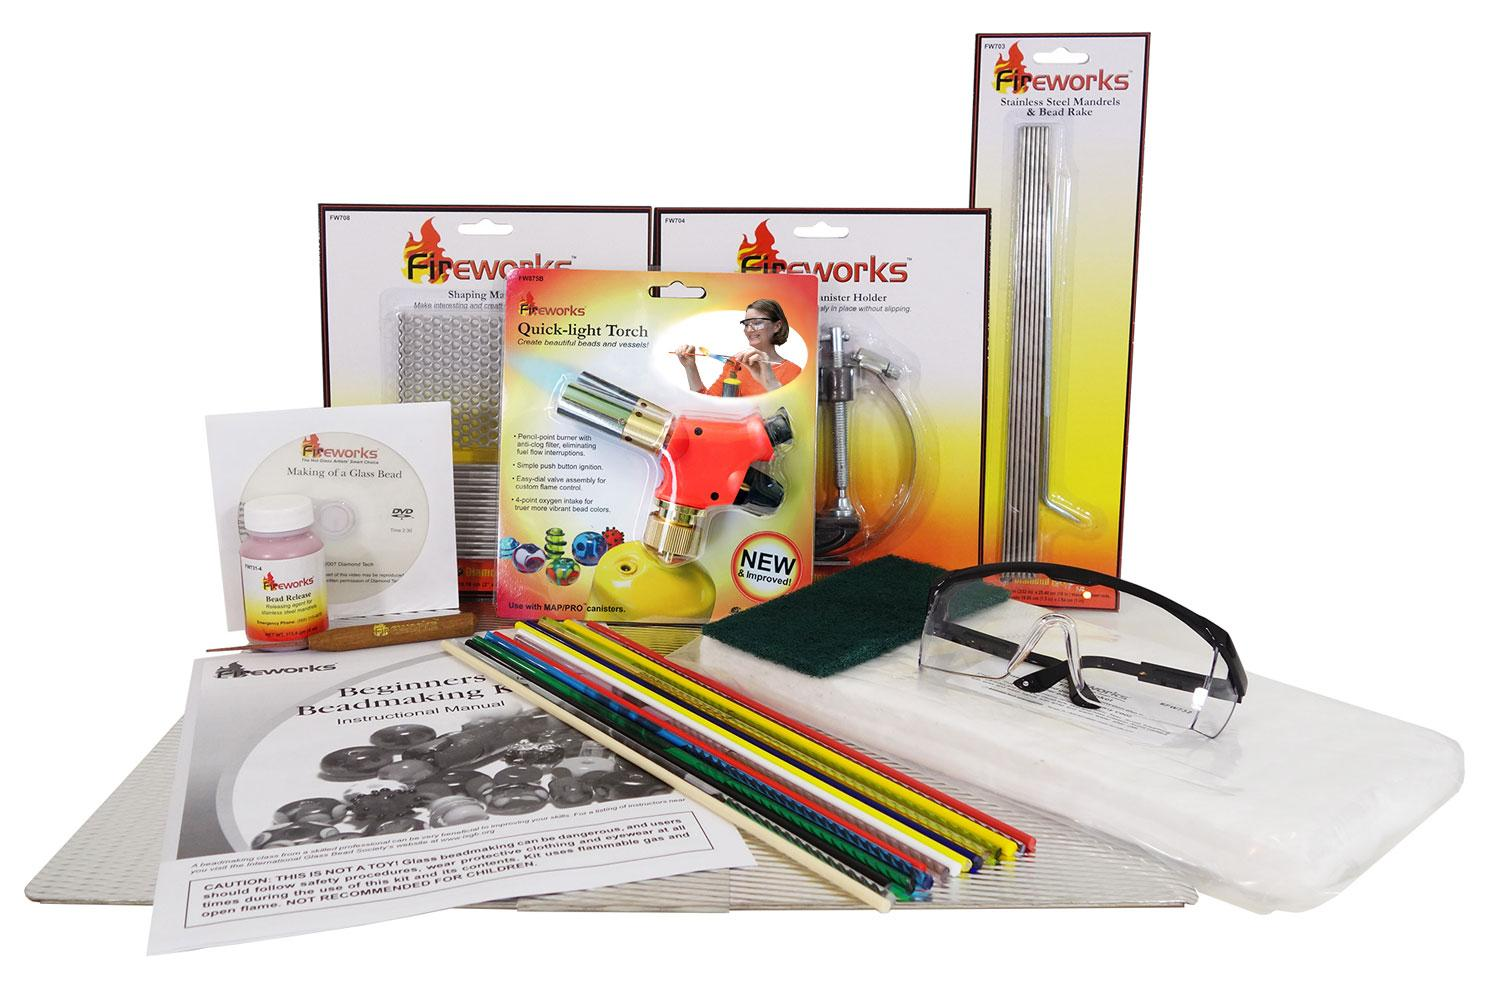 Fireworks Bead Making Kit